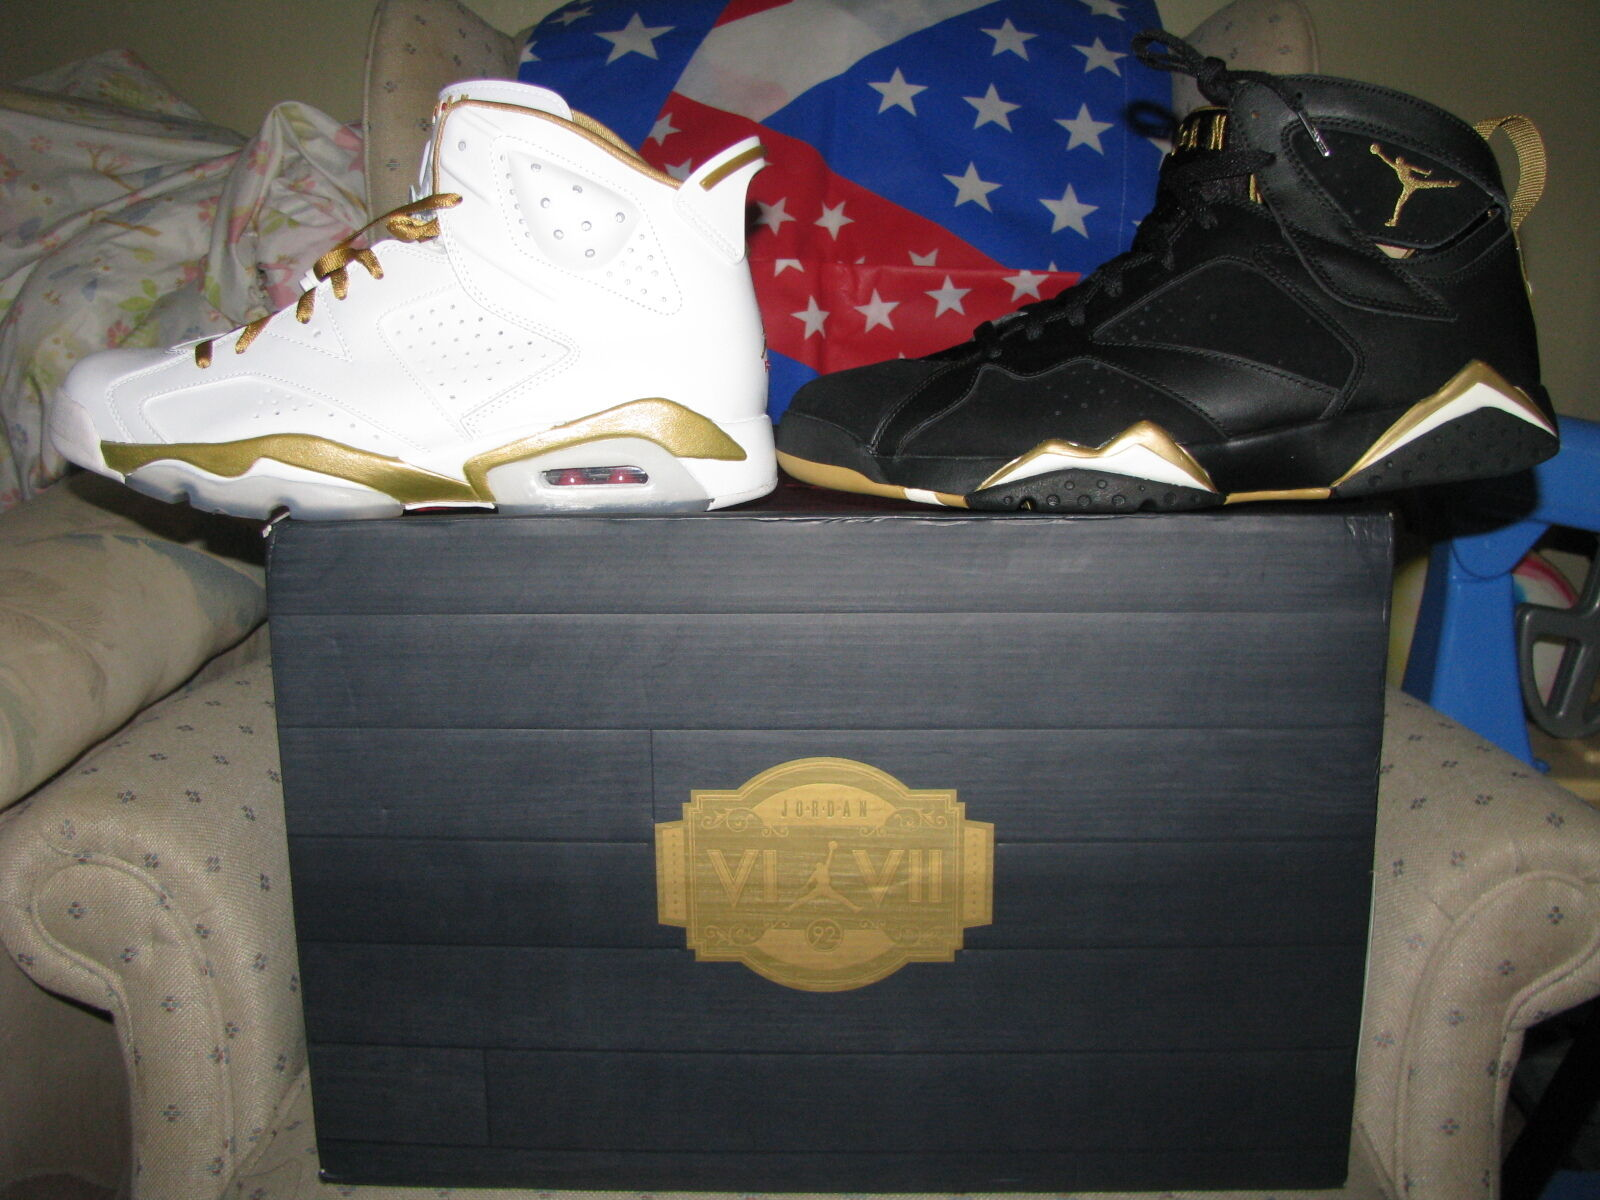 NIKE AIR JORDAN RETRO 6 & 7 DMP goldEN MOMENT OLYMPIC PACK USA Laser Bred Light